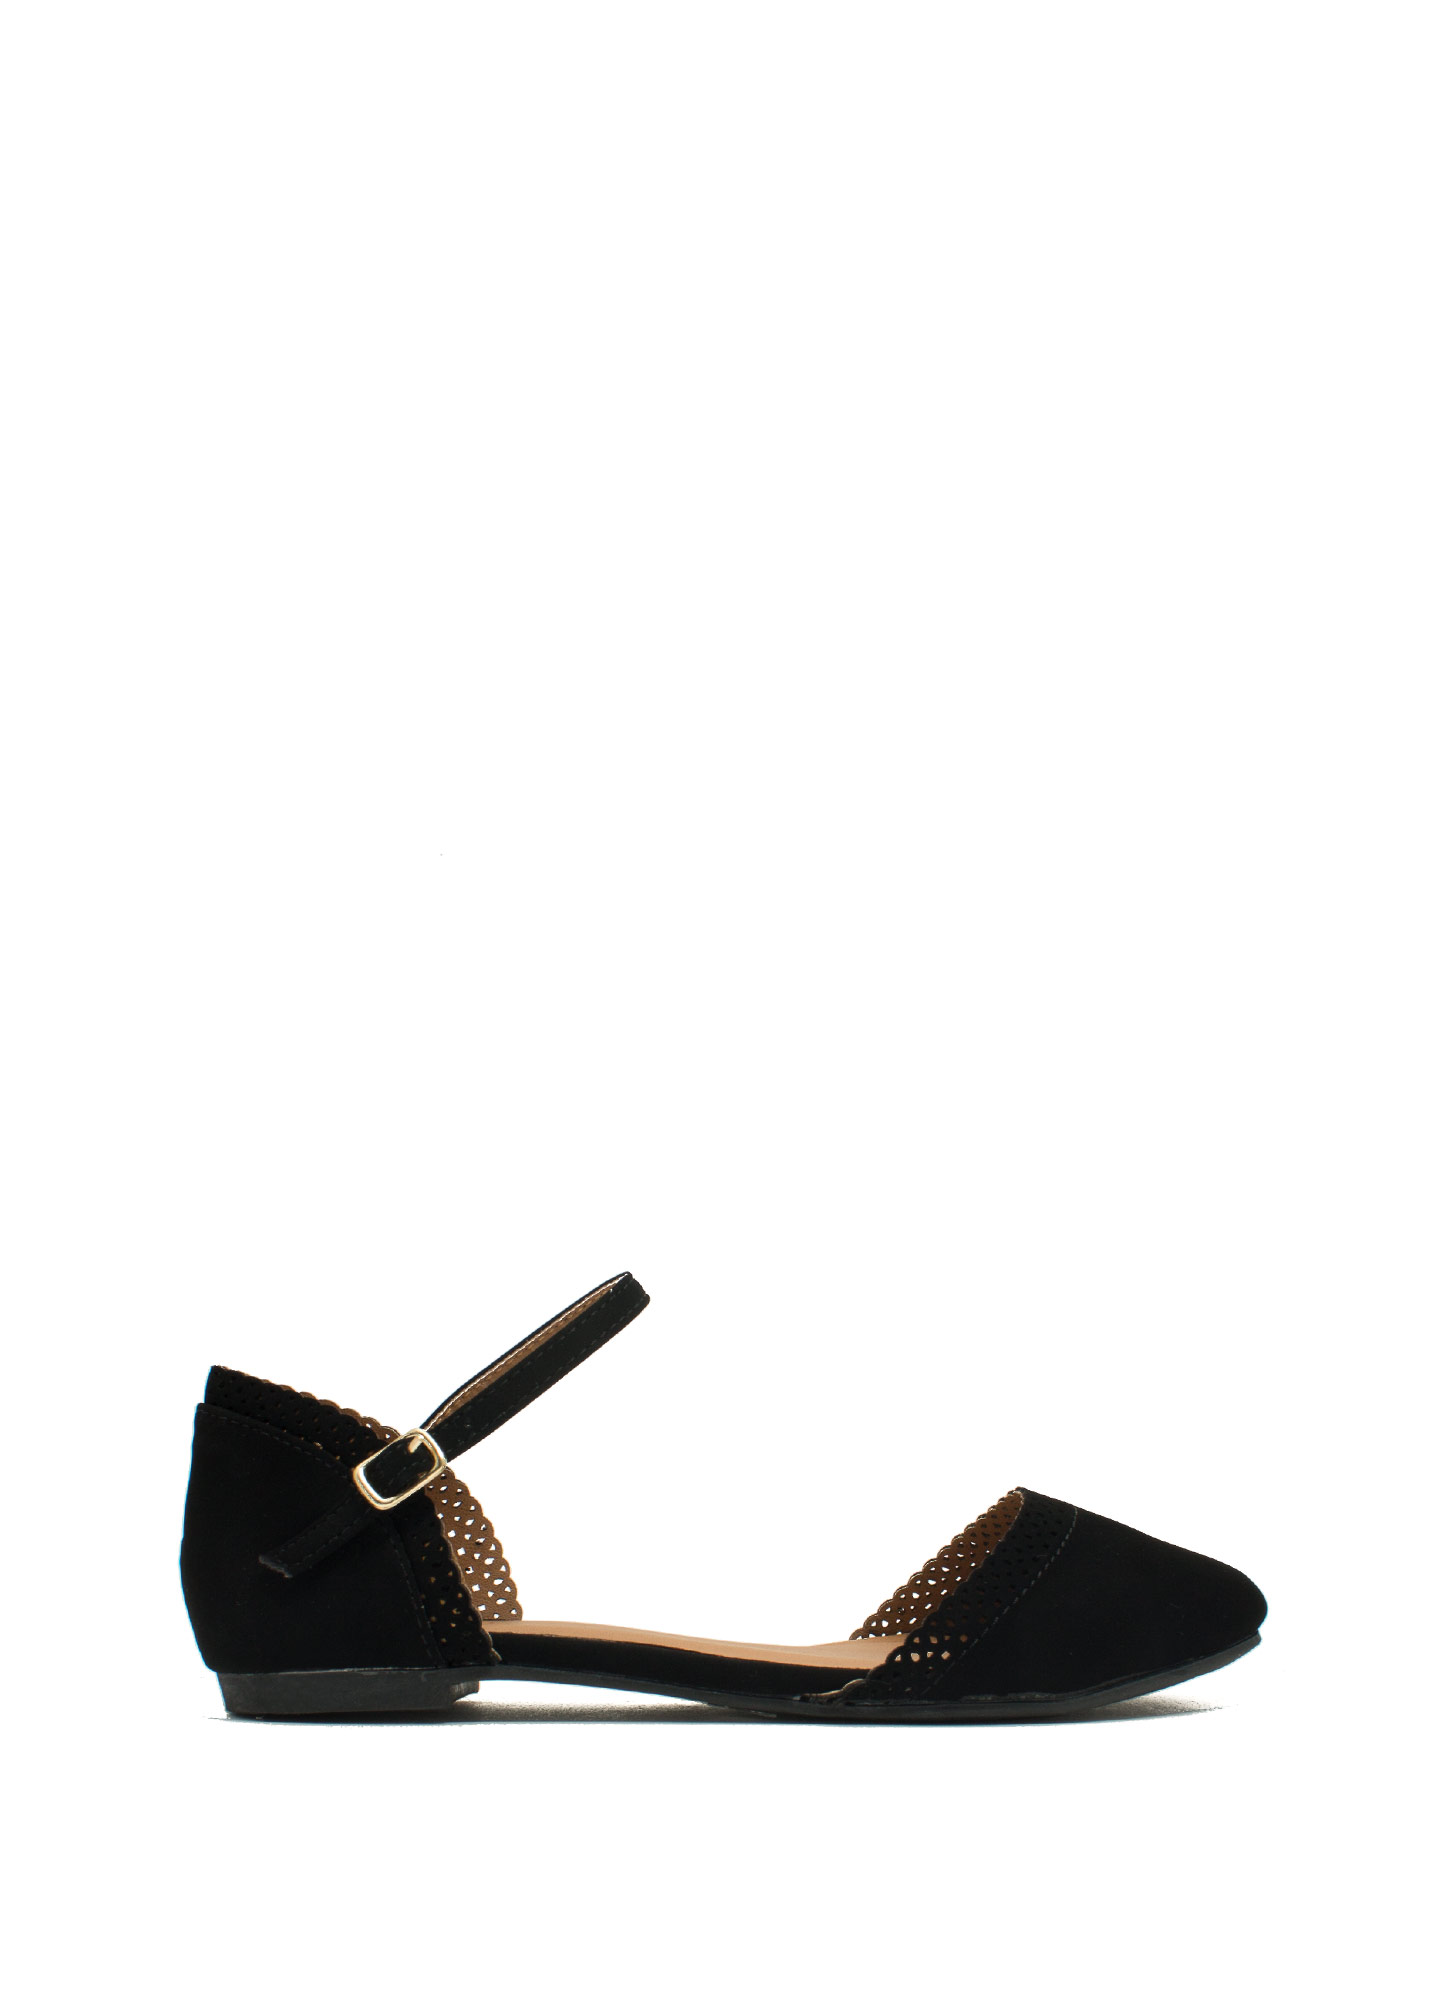 All Eyelets On You Ankle Strap Flats BLACK